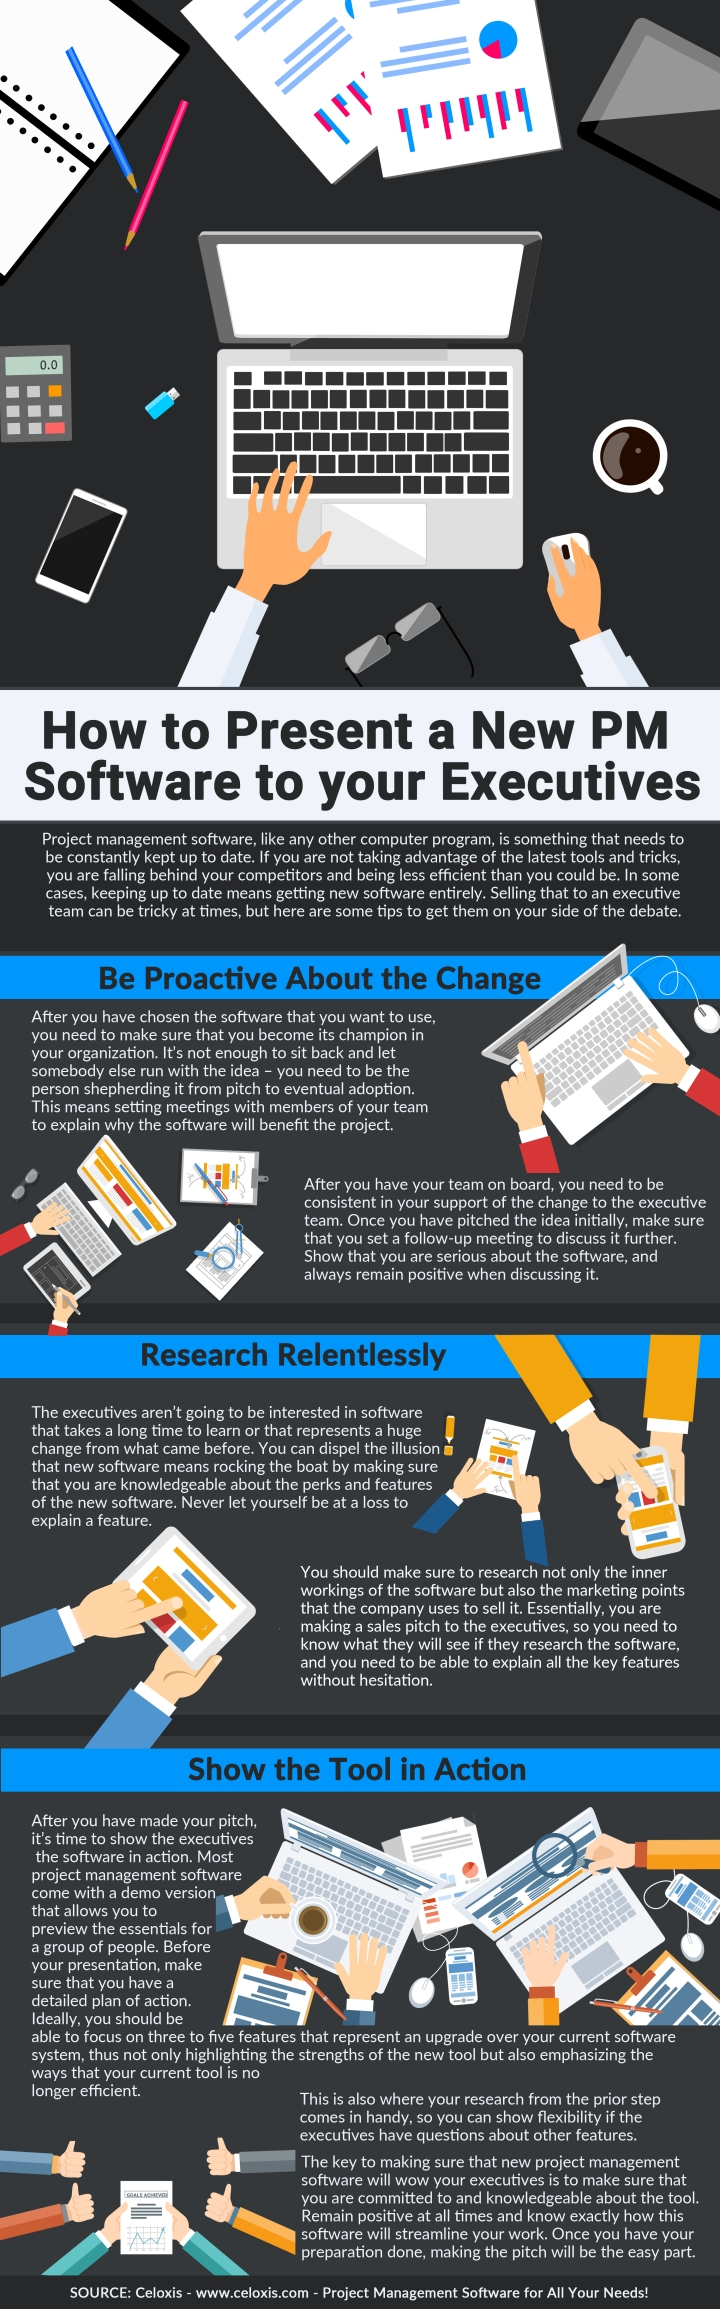 INFOGRAPHIC: How to Present a New PM Software to your Executives